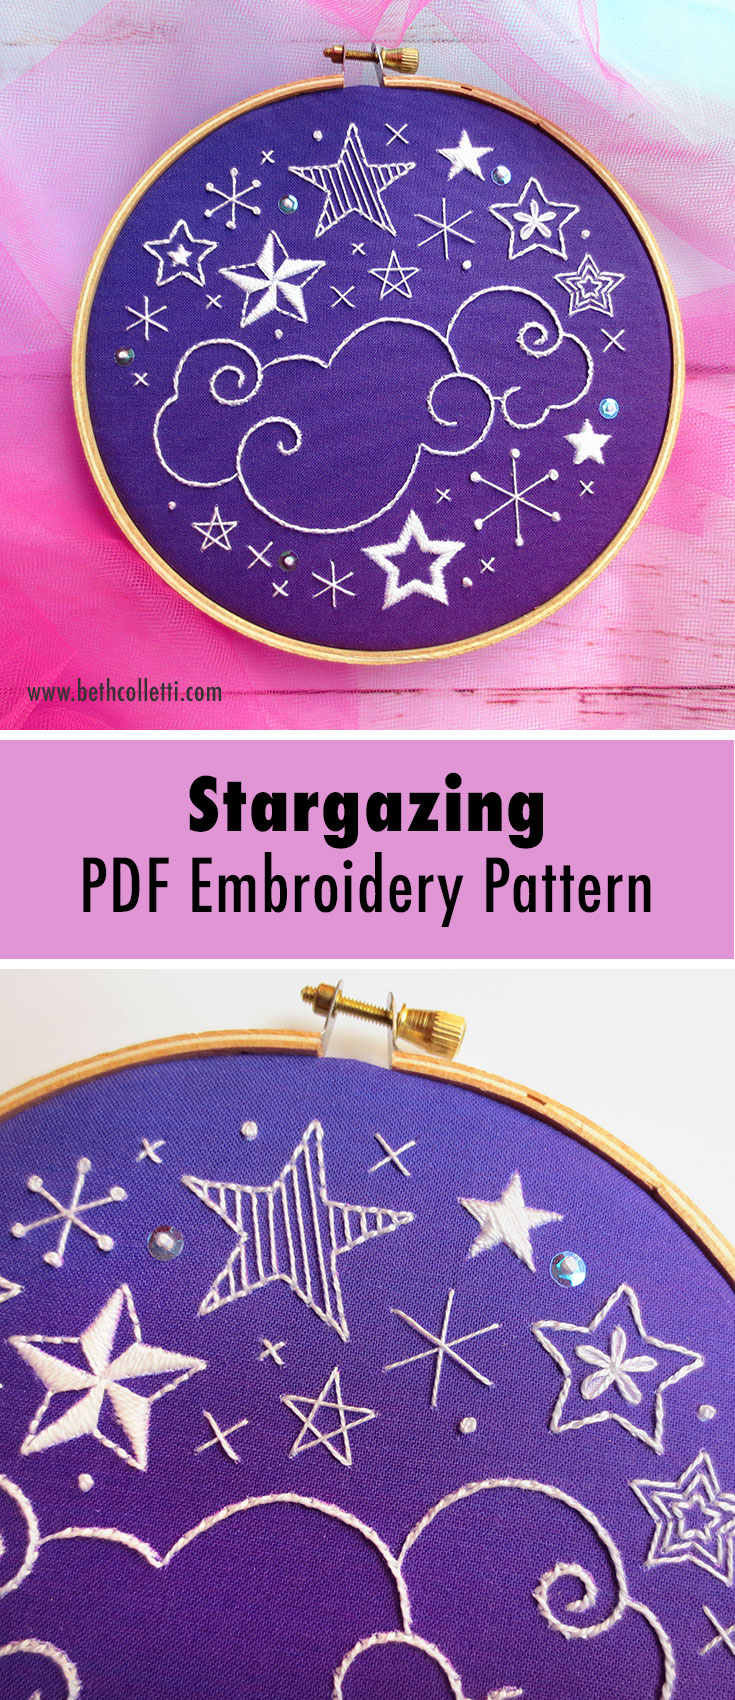 Stargazing constellation embroidery pattern using sequins and colonial knots